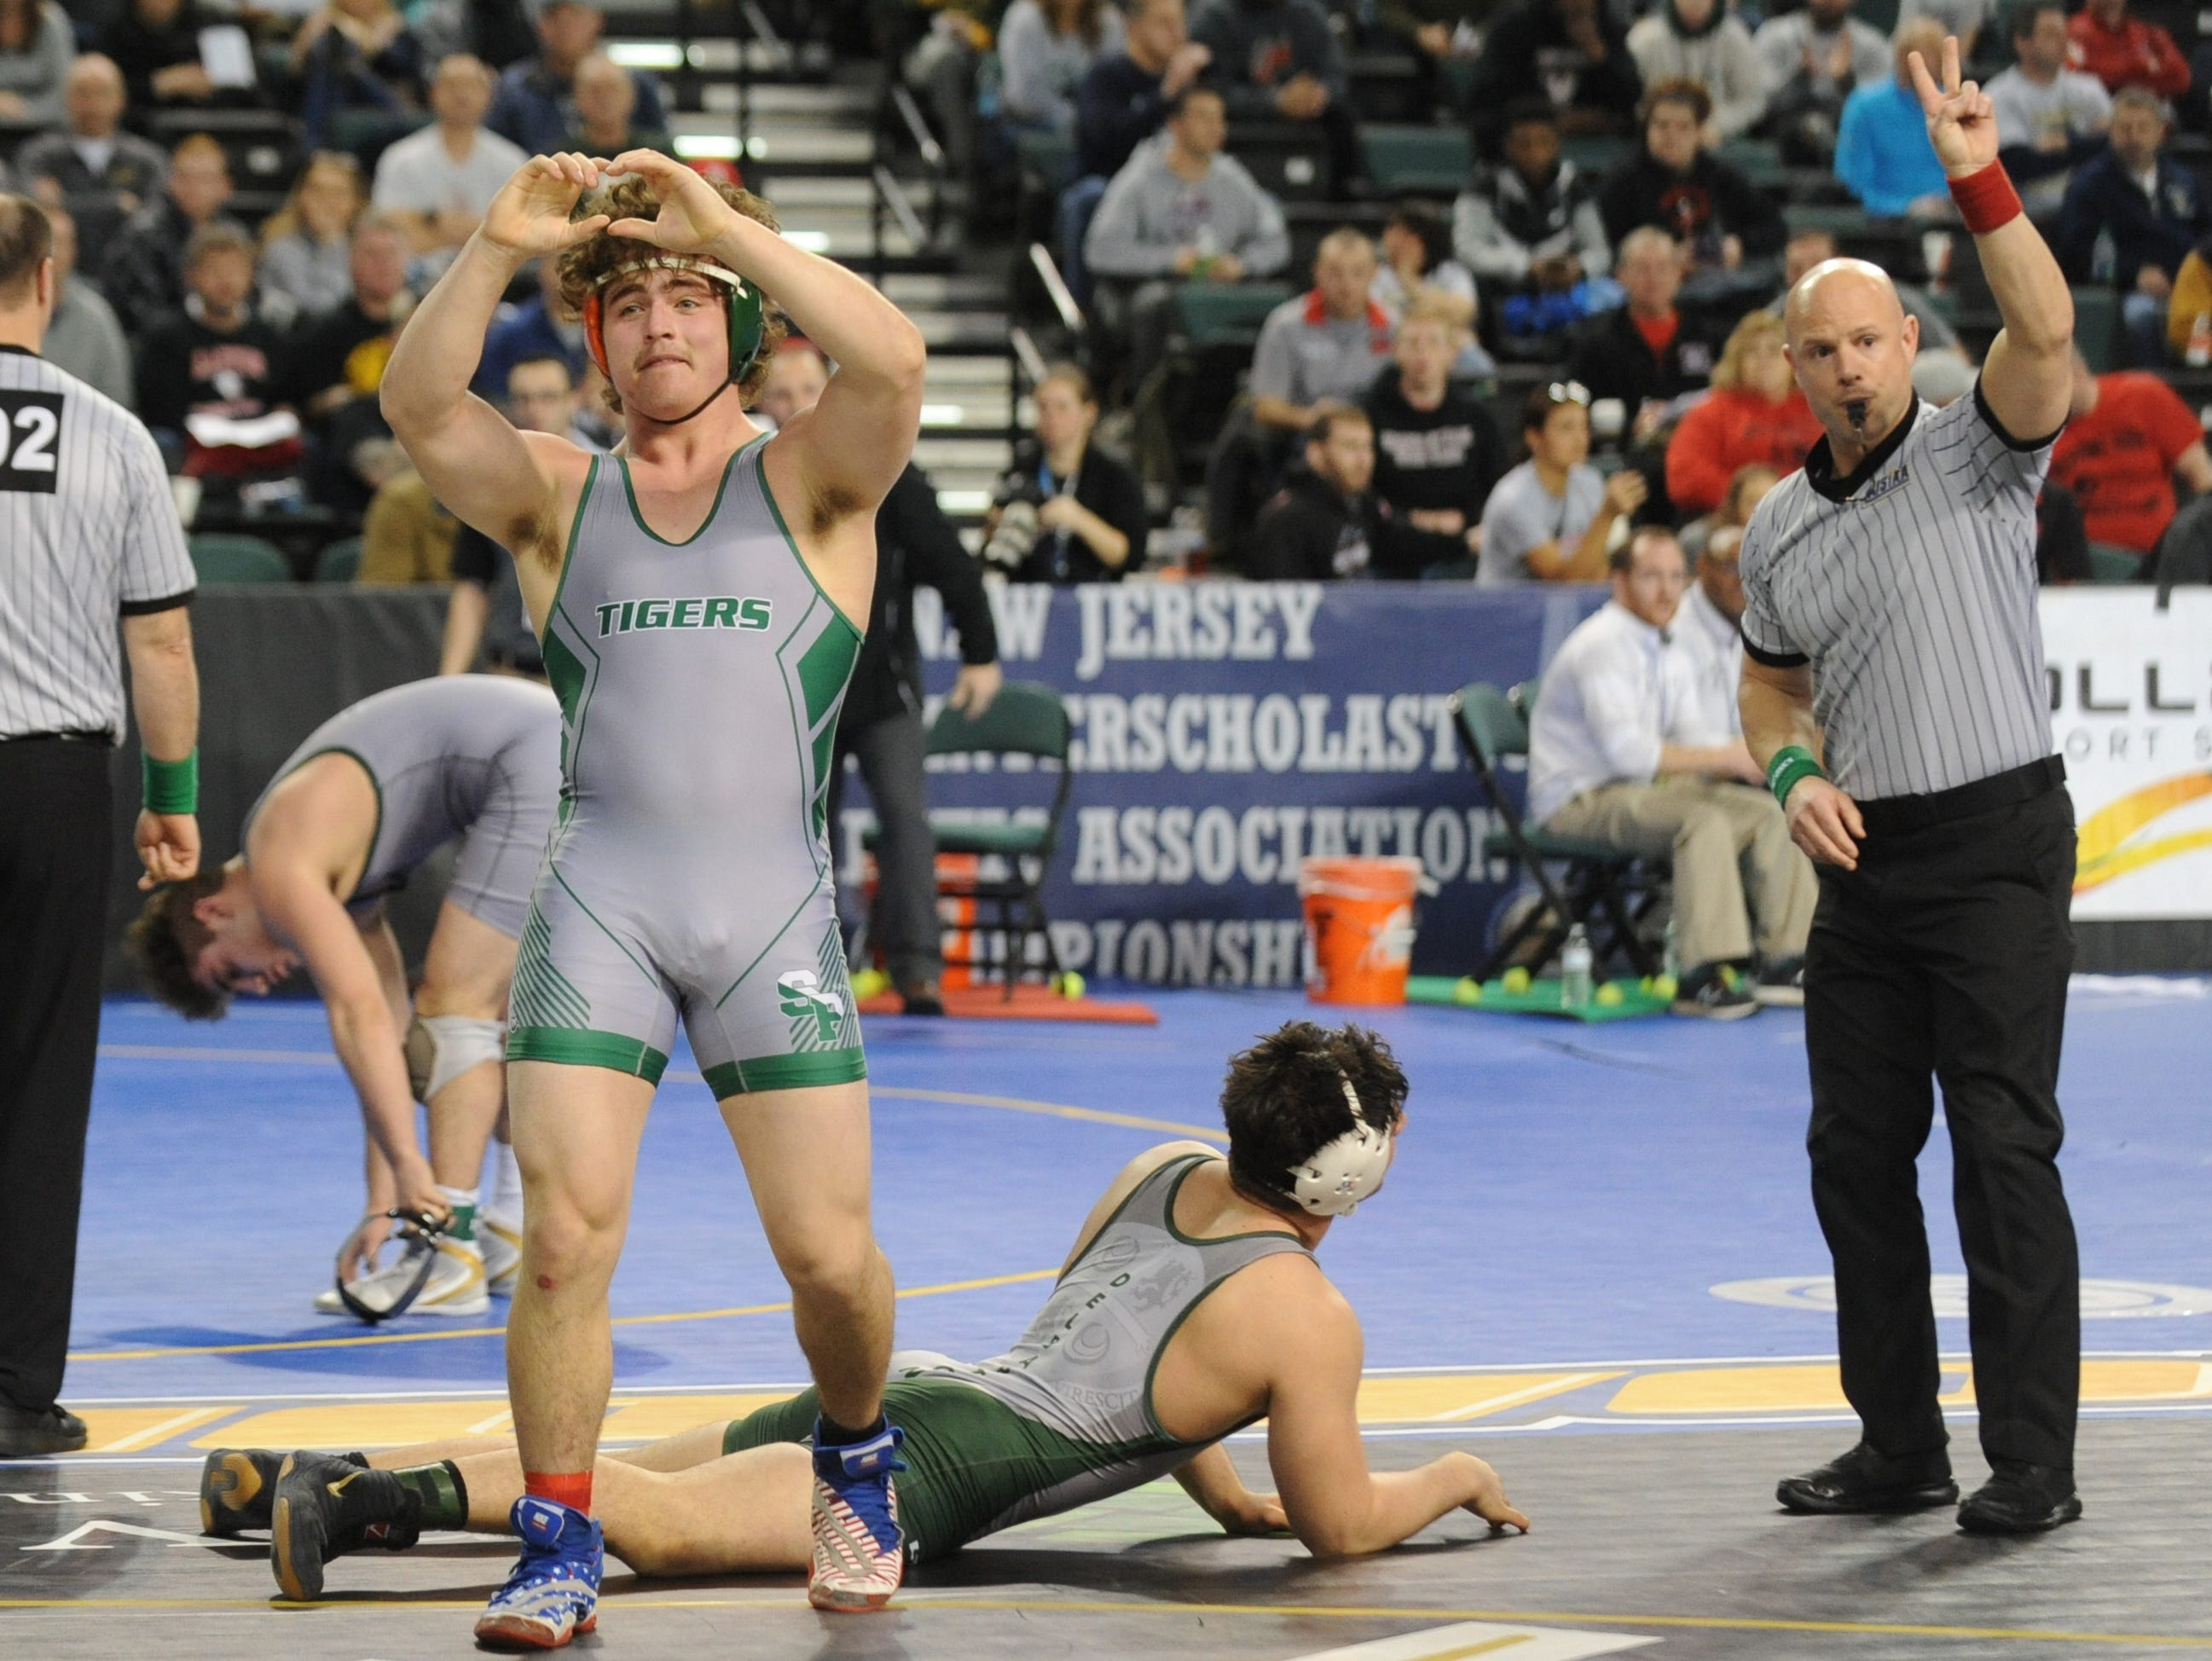 South Plainfield's Luke Niemeyer reacts after defeating Delbarton's Luke Chakonis in a 195-pound quarterfinal bout during the NJSIAA Individual Wrestling Championships at Boardwalk Hall in Atlantic City, Friday, March 1, 2019.